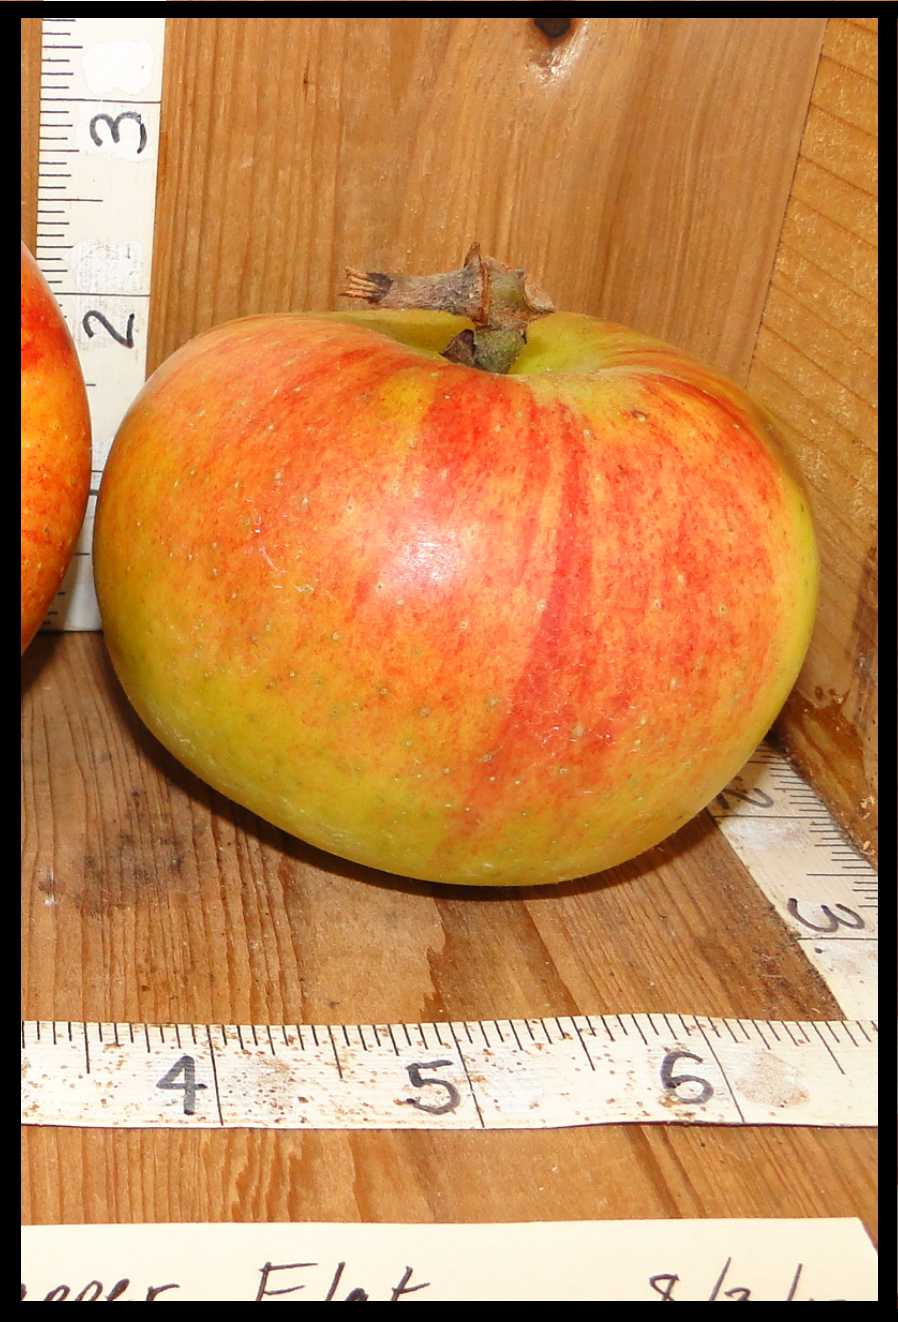 yellowish green apple with red blush and striping